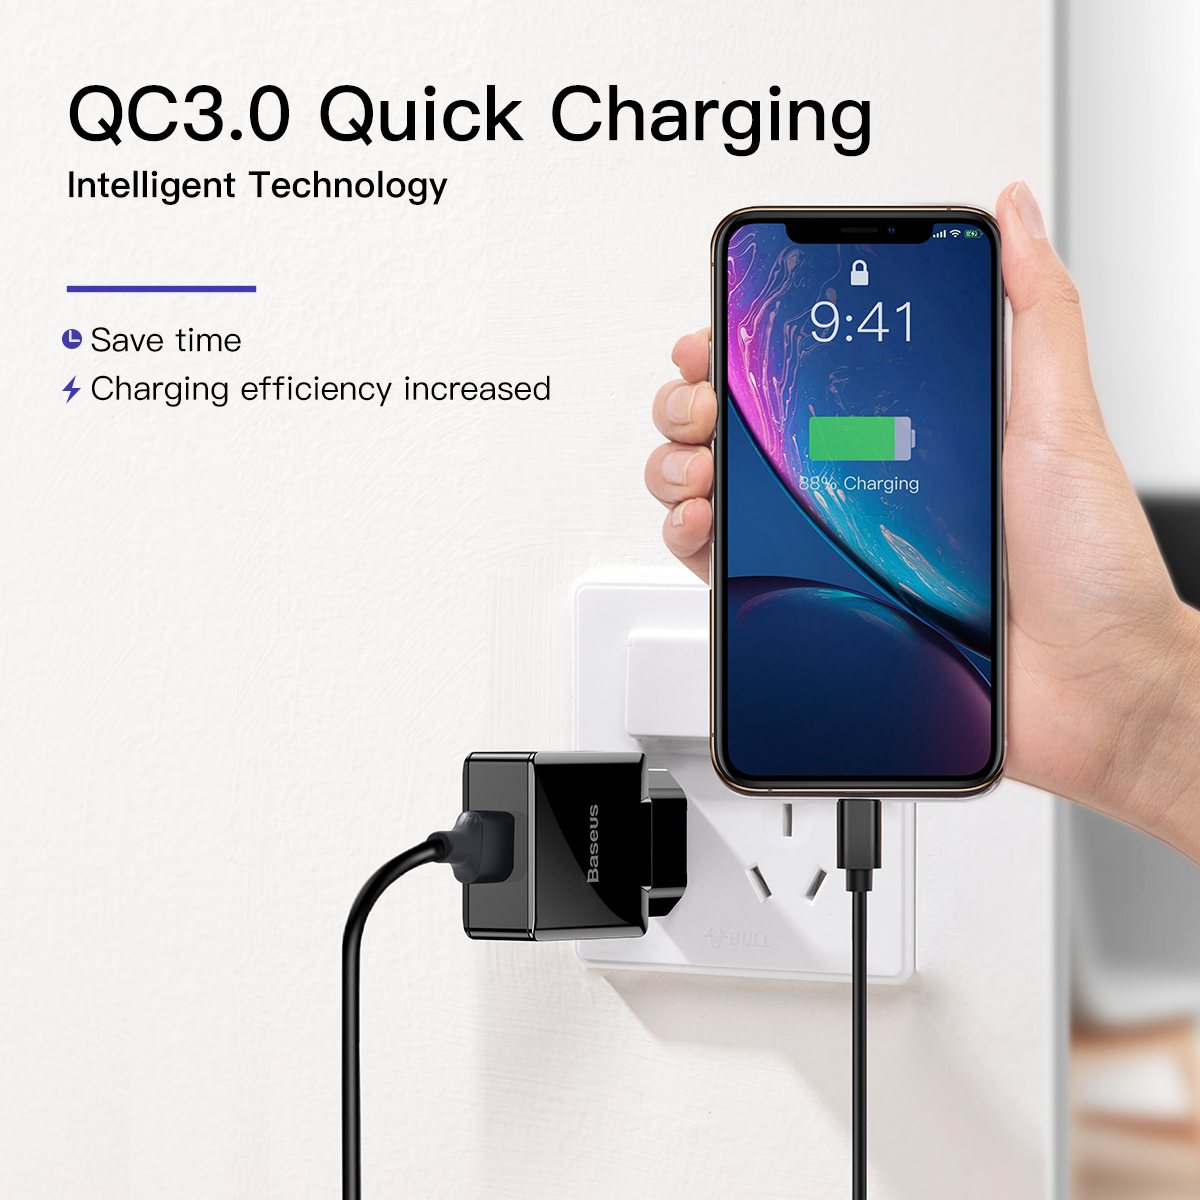 Image 2 - Baseus Quick Charge 3.0 2.0 USB Charger For iPhone Xiaomi Samsung Huawei QC3.0 QC Fast Charing Turbo Wall Mobile Phone Charger-in Mobile Phone Chargers from Cellphones & Telecommunications